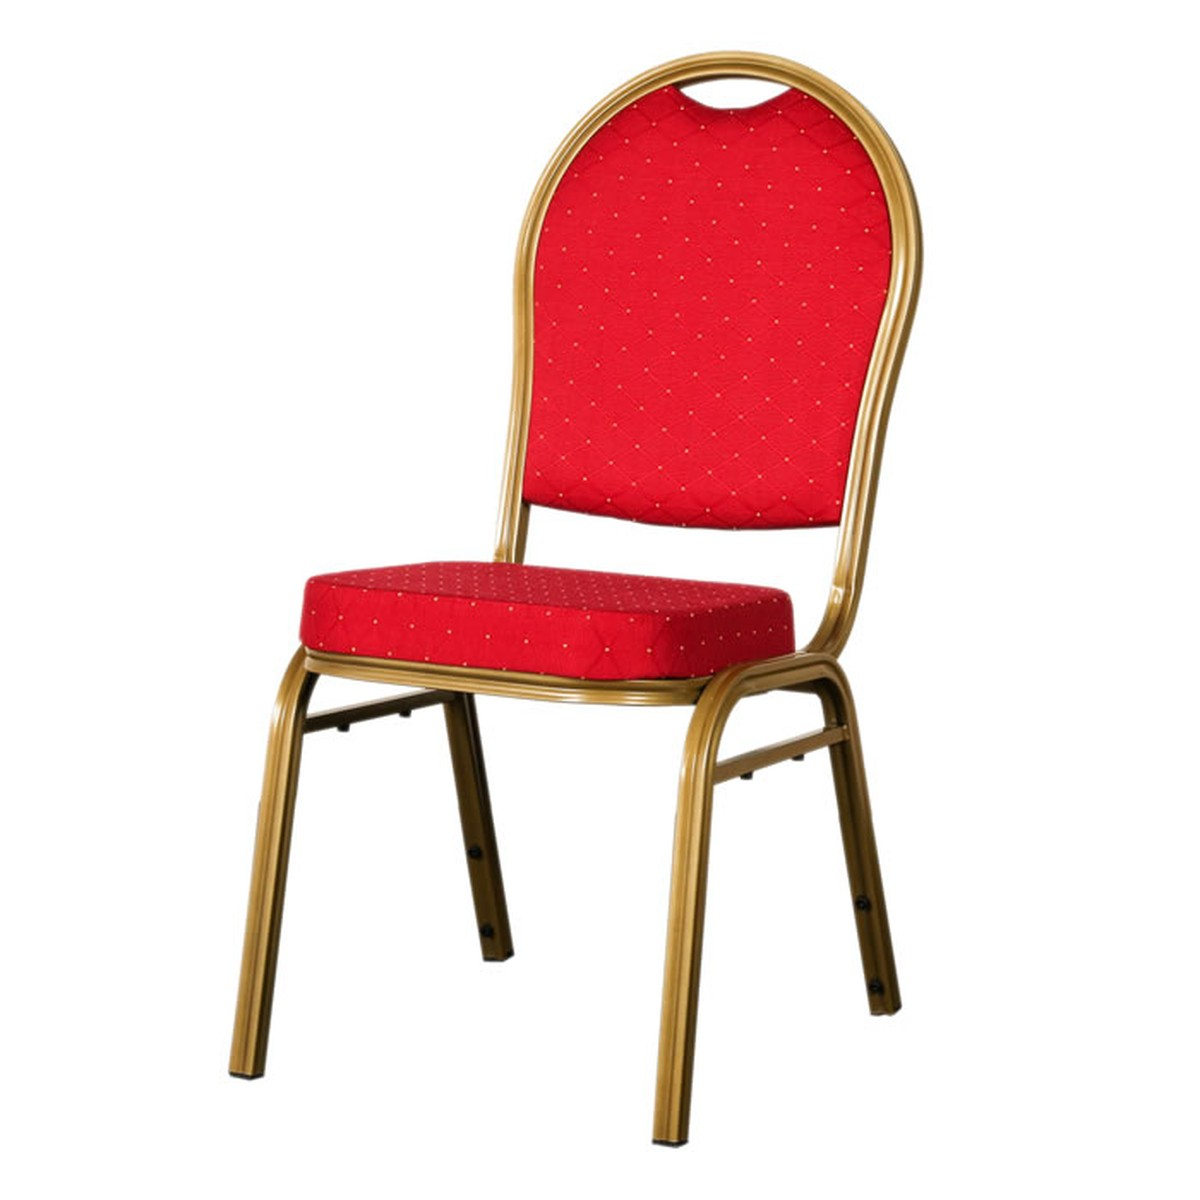 steel chair for hotel target patio sling folding secondhand furniture banquet